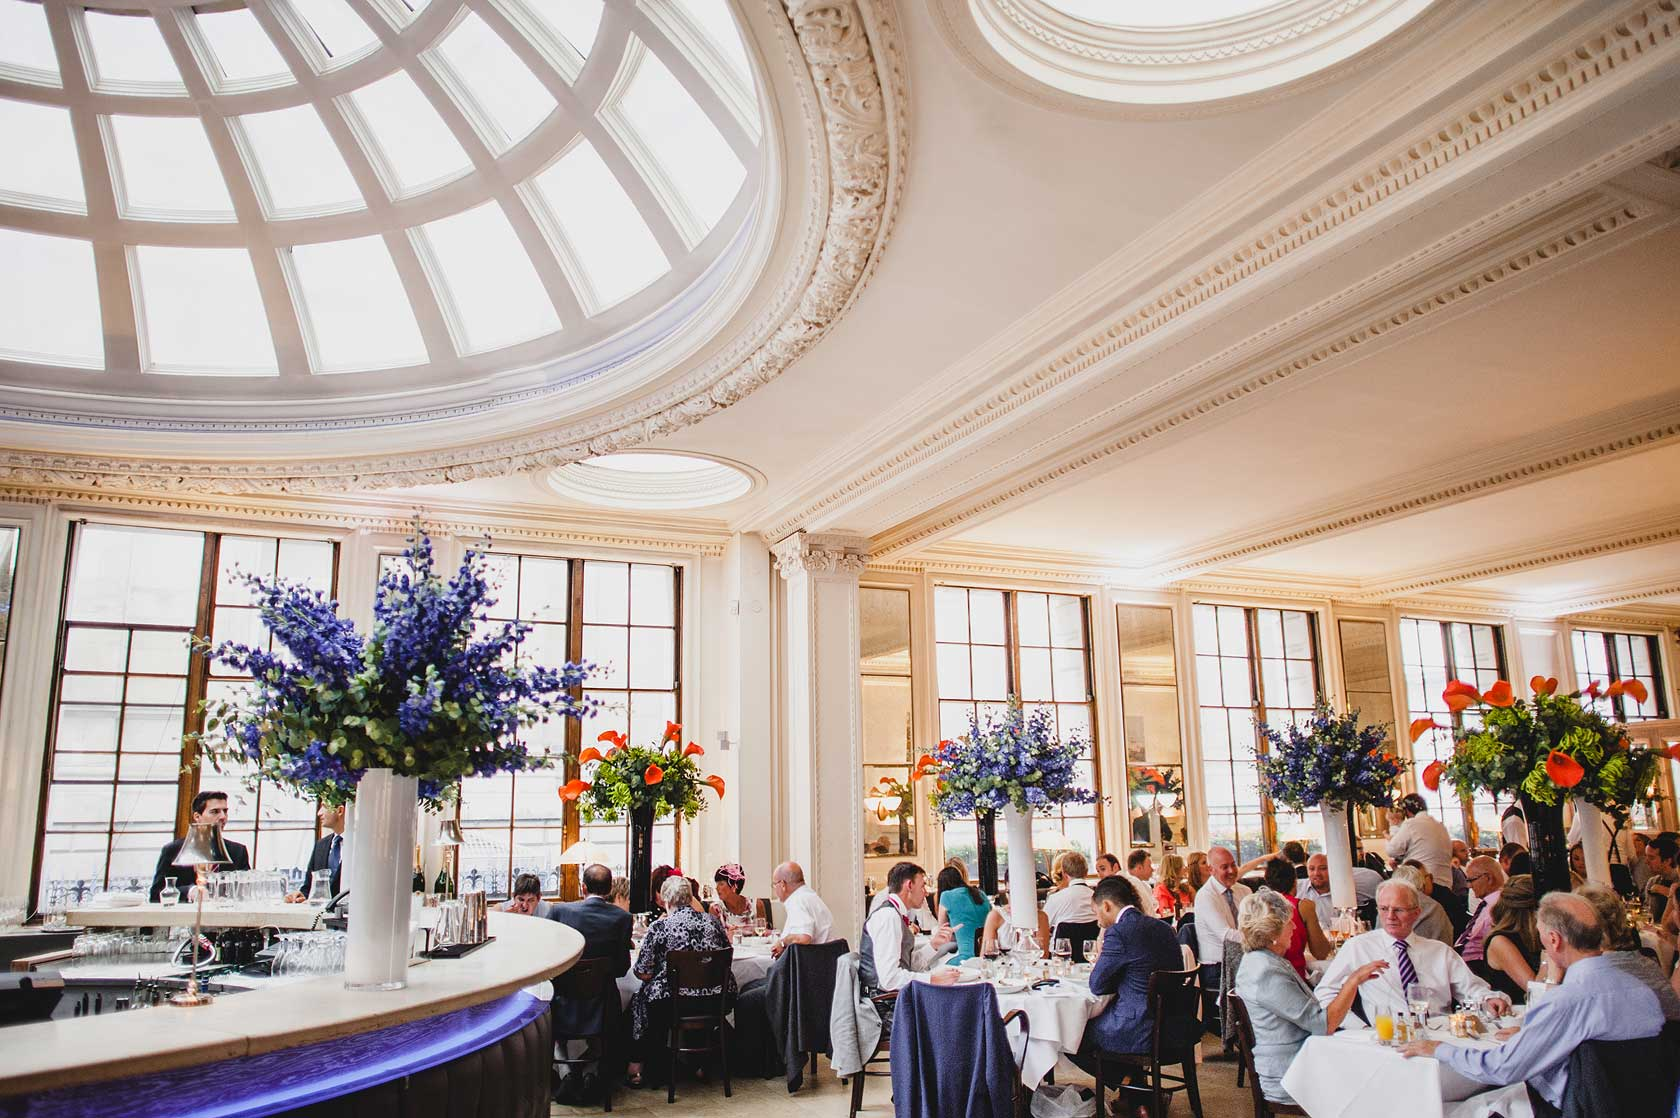 Reportage Wedding Photography at Islington Town Hall